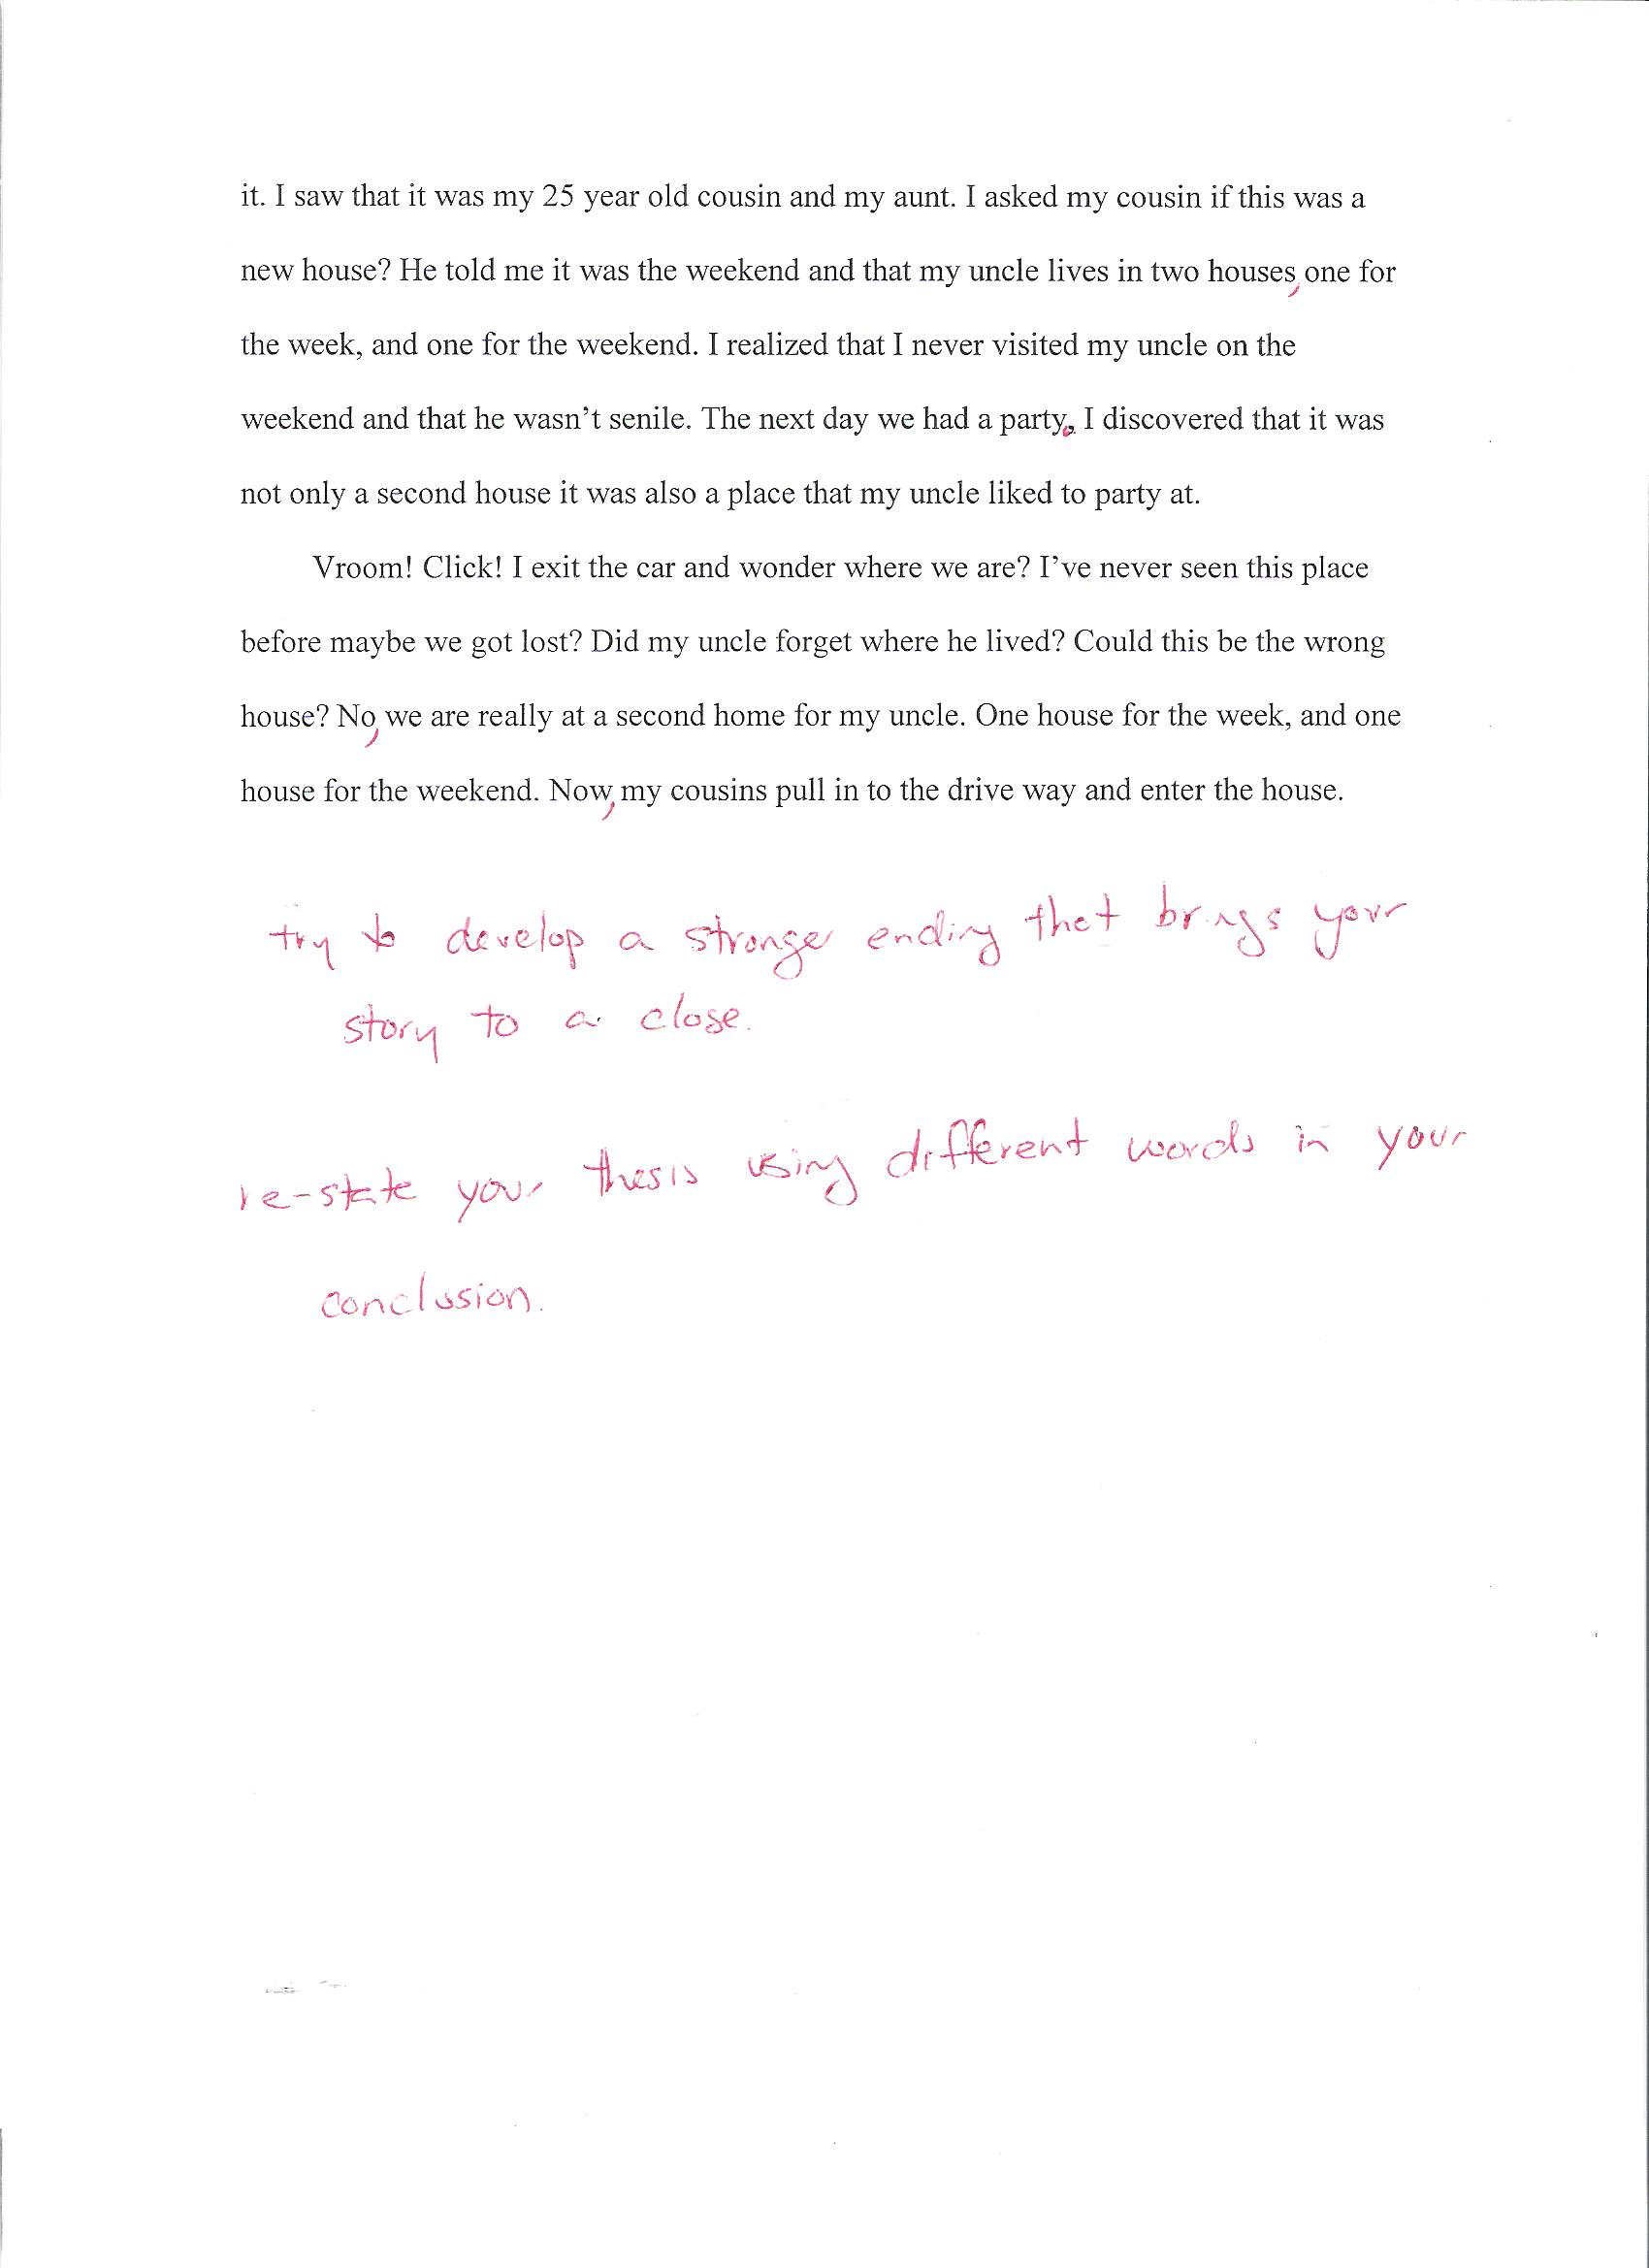 Magoosh High School Blog How To Make Your Essay Not Boring Academic Writing From Custom Writing Help Uk